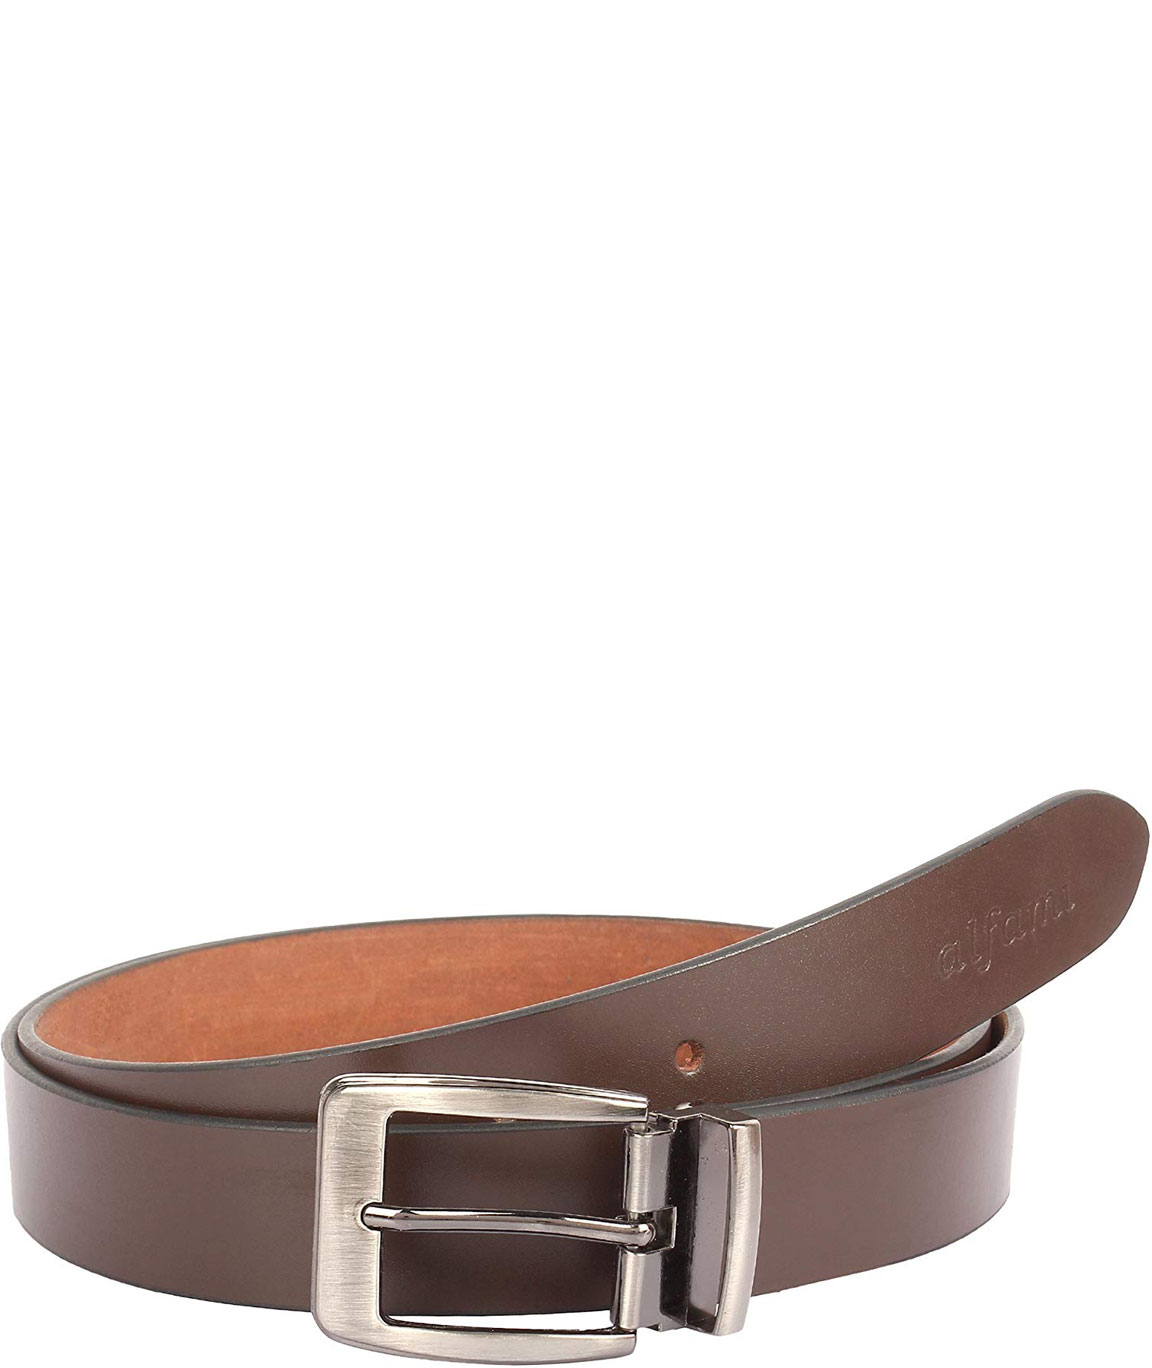 Alfami Mens Genuine Leather Belt Brown Colour All Sizes Timber Pattern